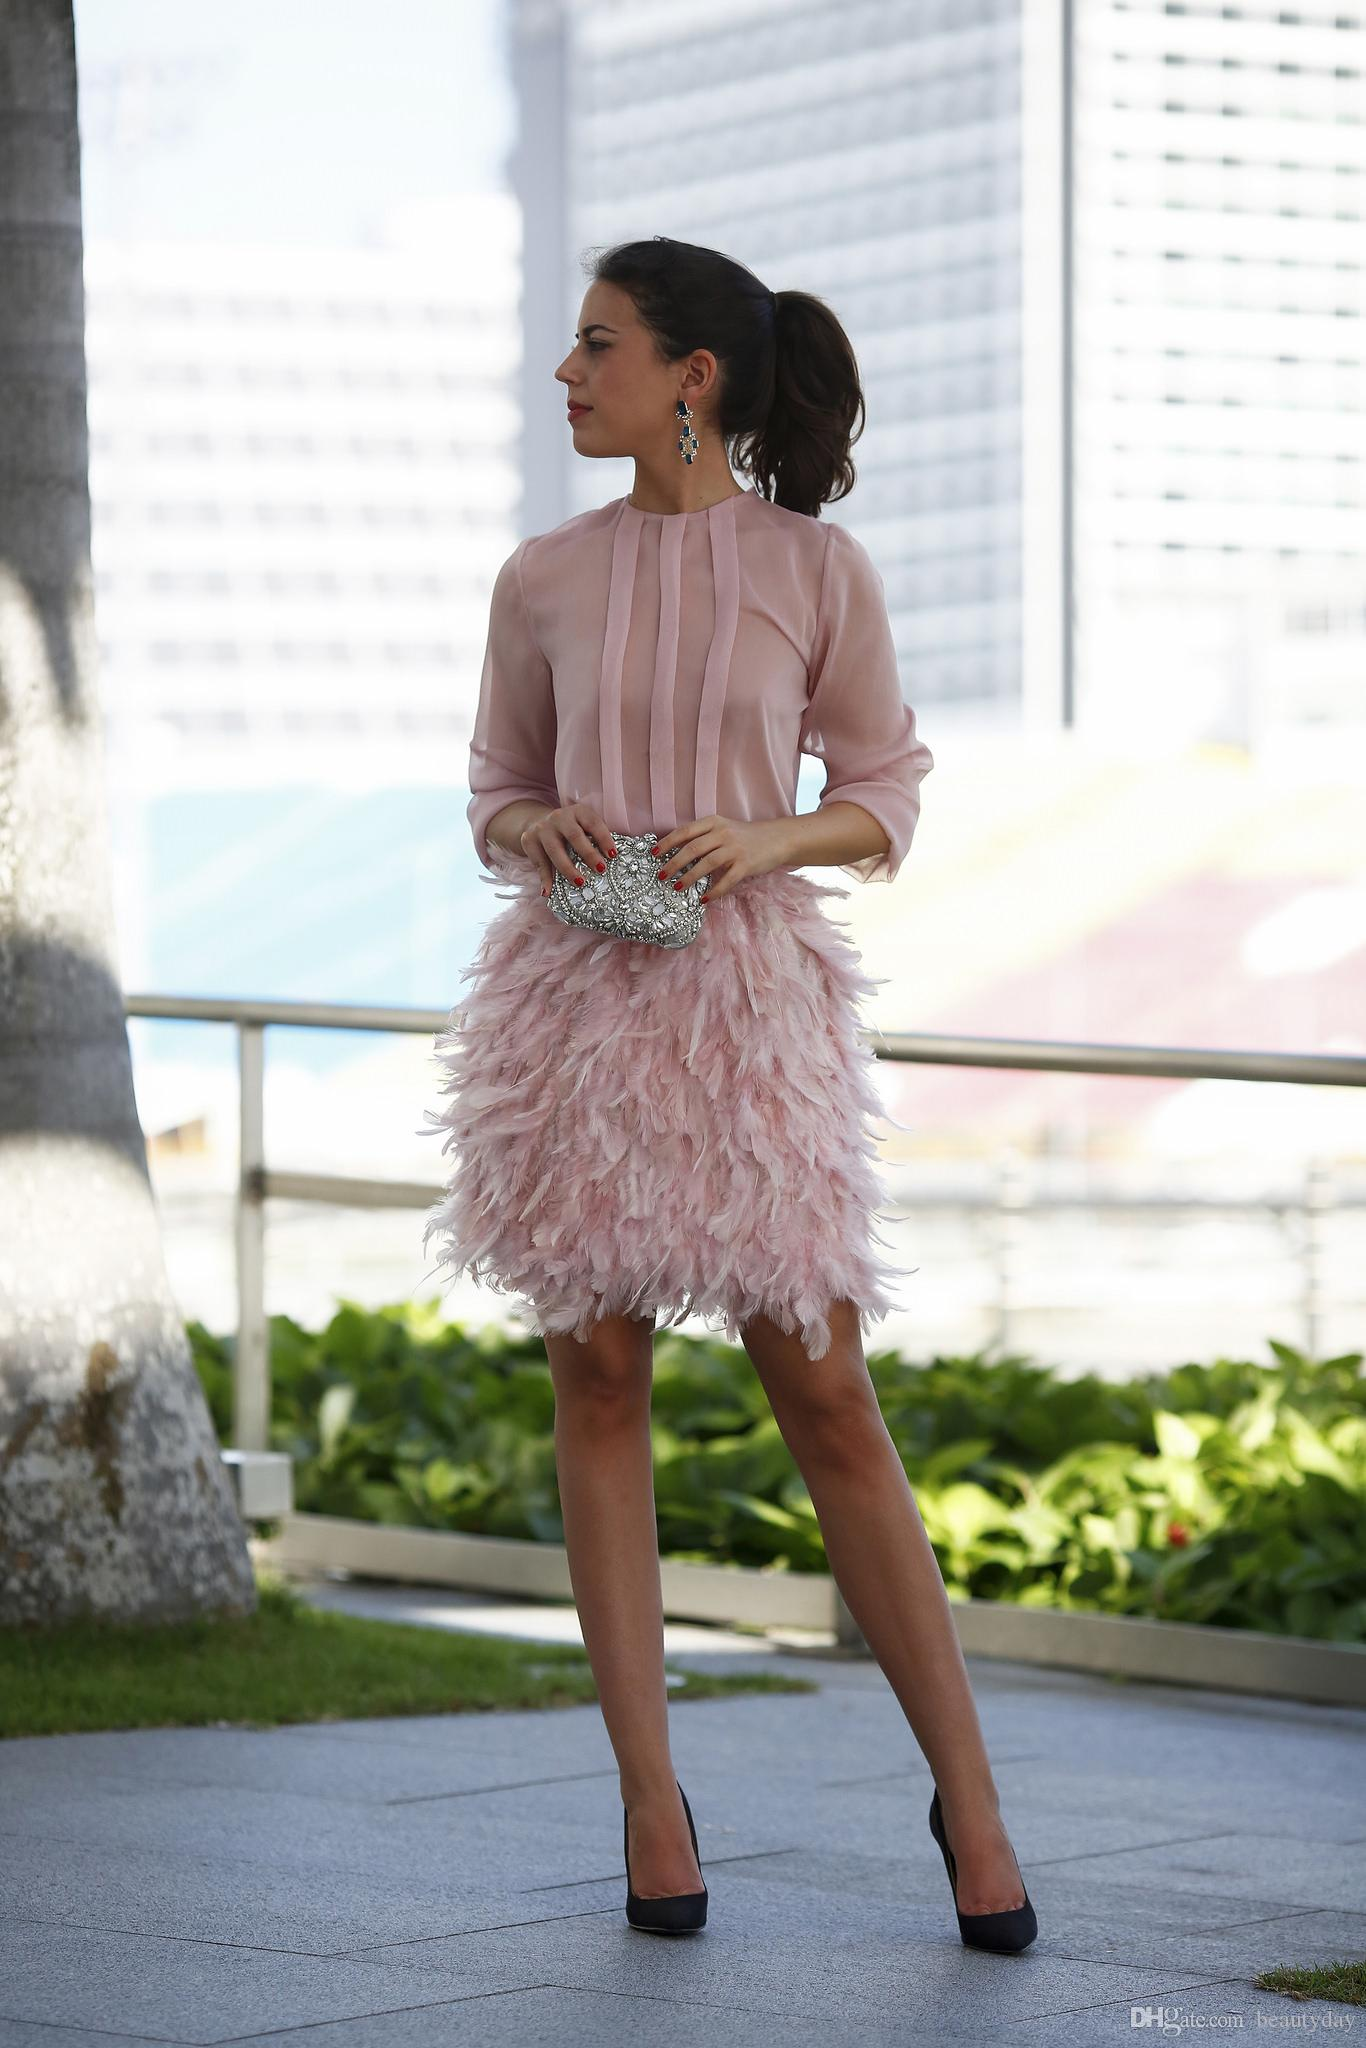 vintage blush Feather Short Prom Dresses 2019 rosa maniche lunghe schiena aperta con fiocco abiti da sera arabo dubai abiti da cocktail party